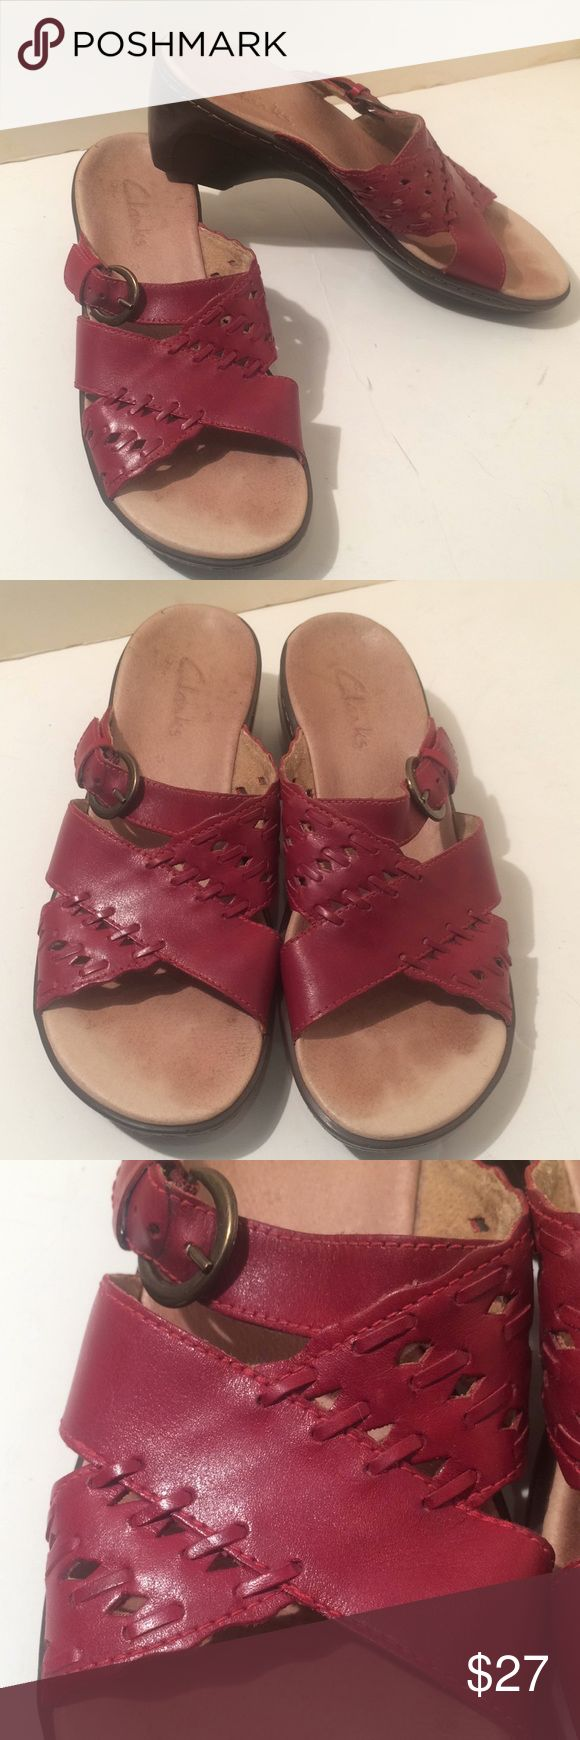 """Clarks sandals shoes slip on mule type Clarks  Super cute for summer or your much needed get away!!! Size 8 m slip on mule type shoes  they have a 2.5"""" heel adjustable buckle  beautiful red shade color  I am a huge clarks / born shoes fanatic and am Doing a huge clean out most of my shoes have only been worn 1-2 times   Open to reasonable offers!! Clarks Shoes Sandals"""